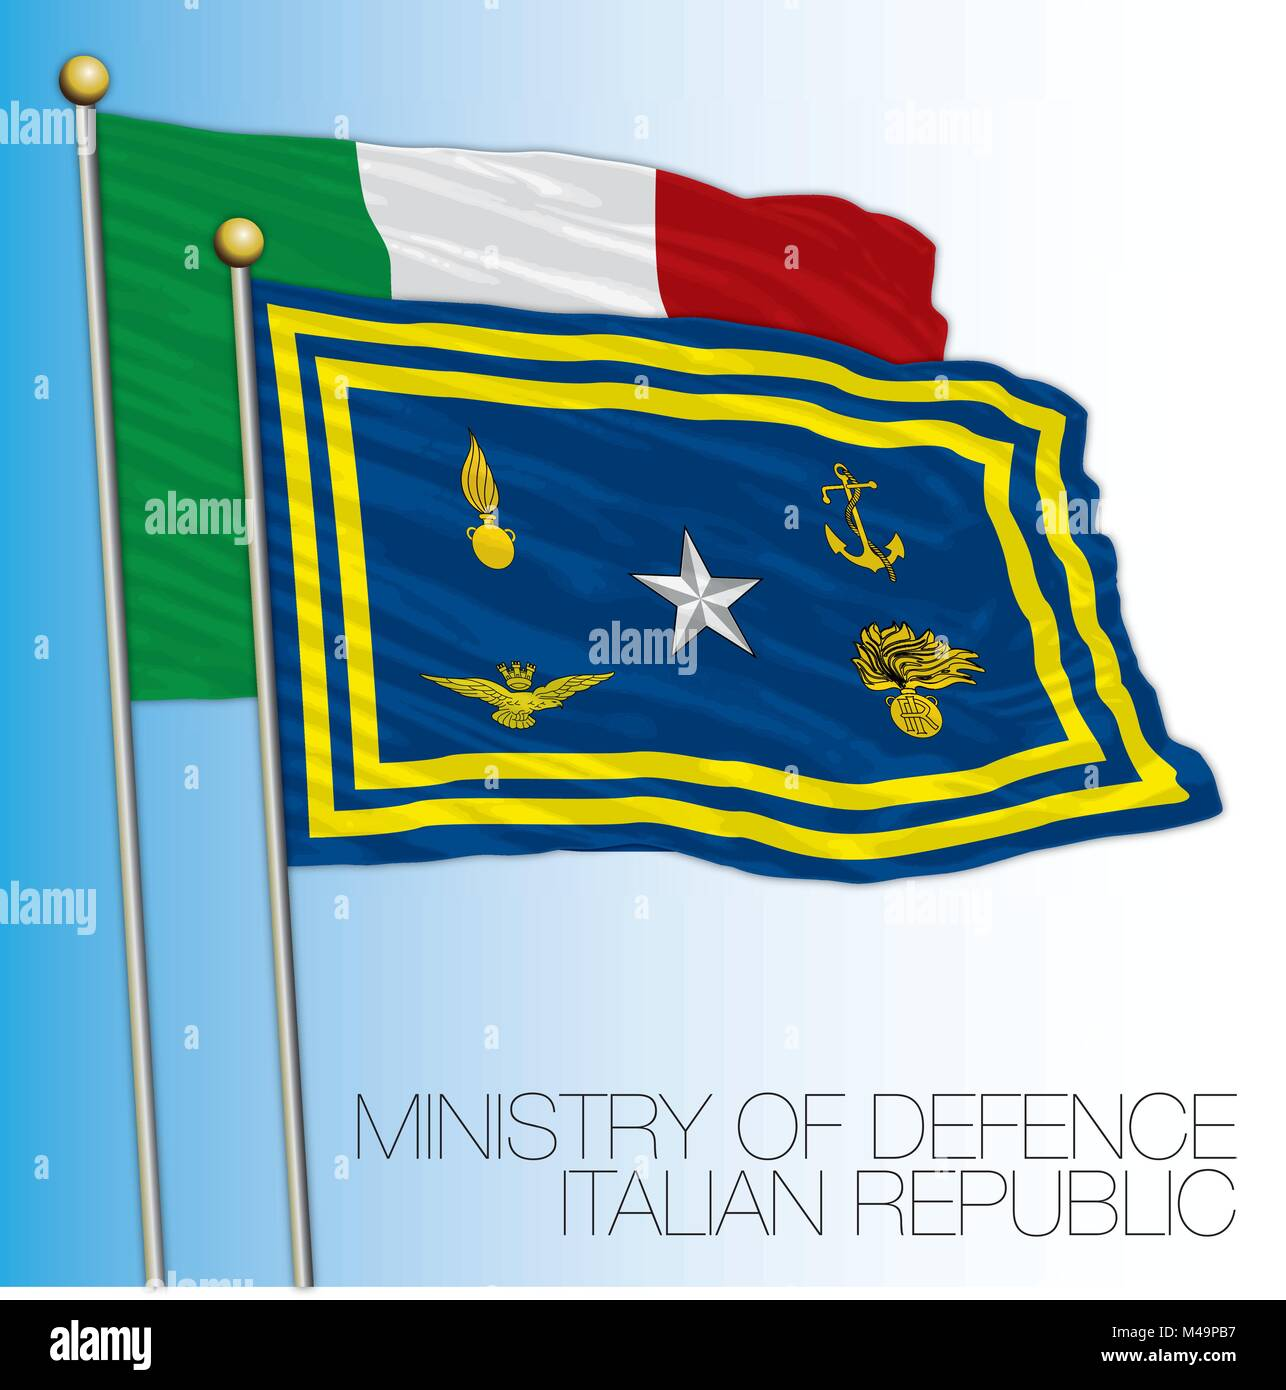 Italian Republic, Ministry of defence flag, Italy - Stock Vector